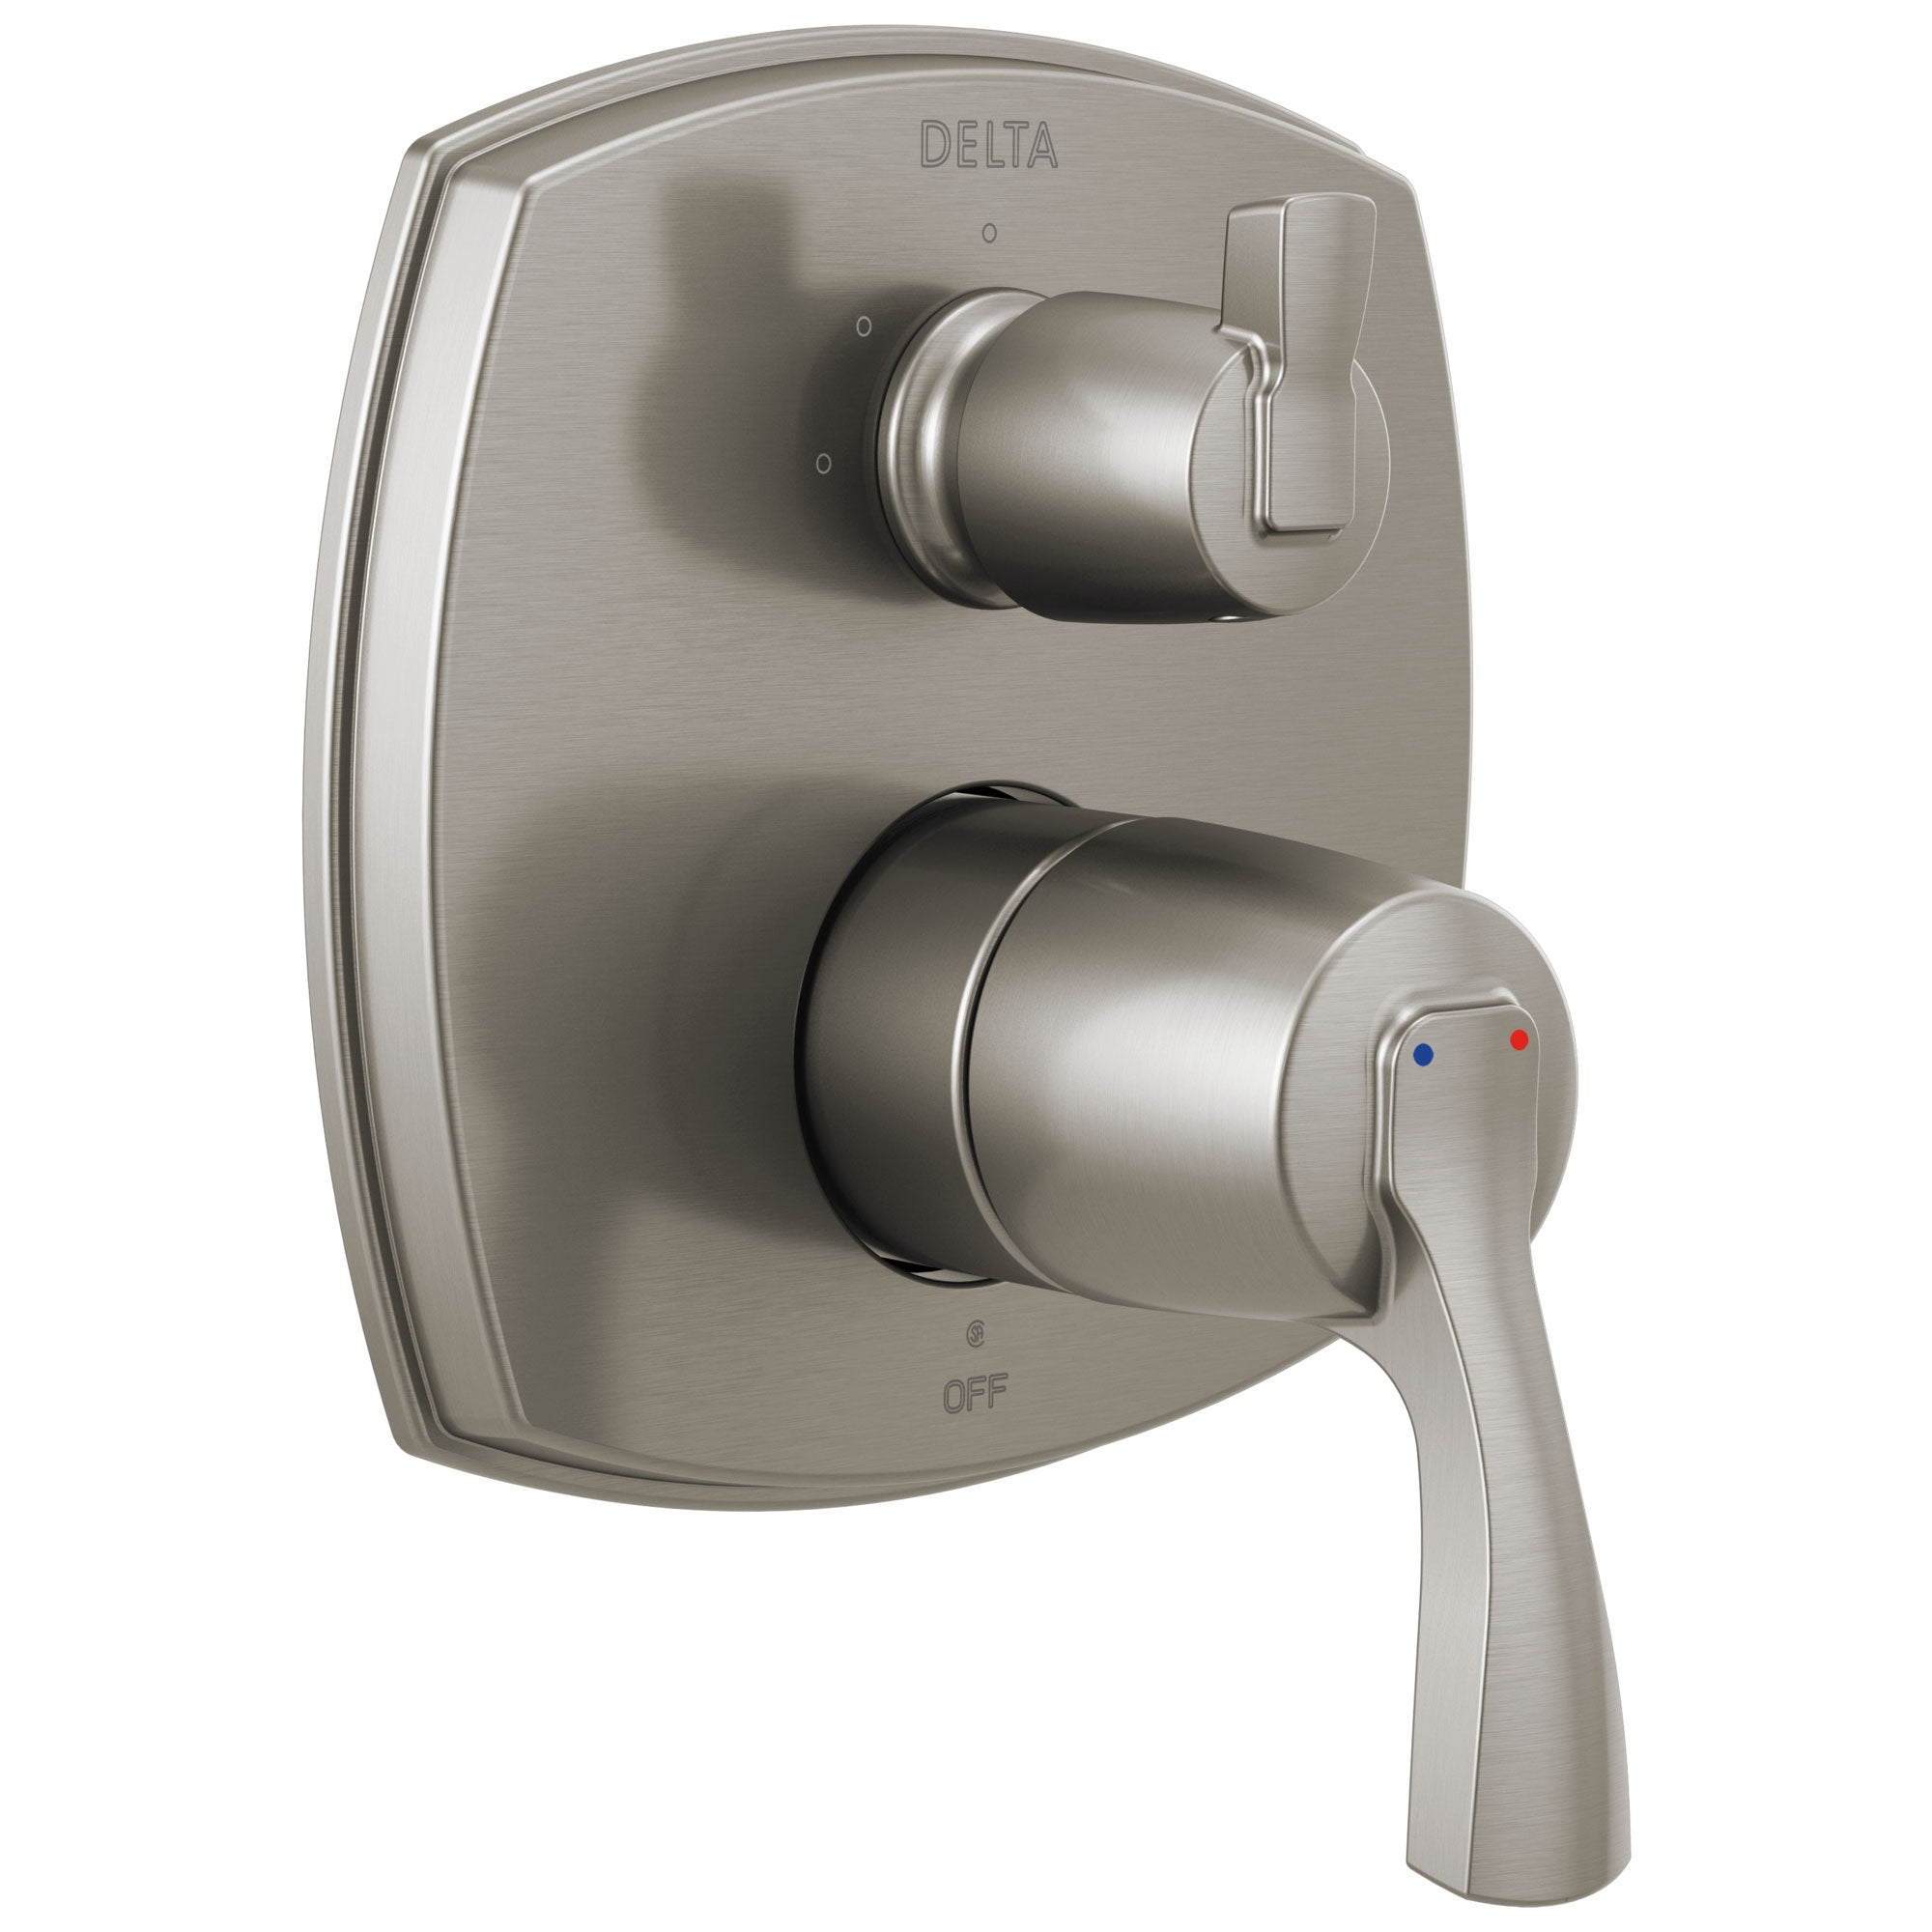 Delta Stryke Stainless Steel Finish 14 Series Shower System Control with 3 Function Integrated Lever Handle Diverter Includes Valve and Handles D3765V